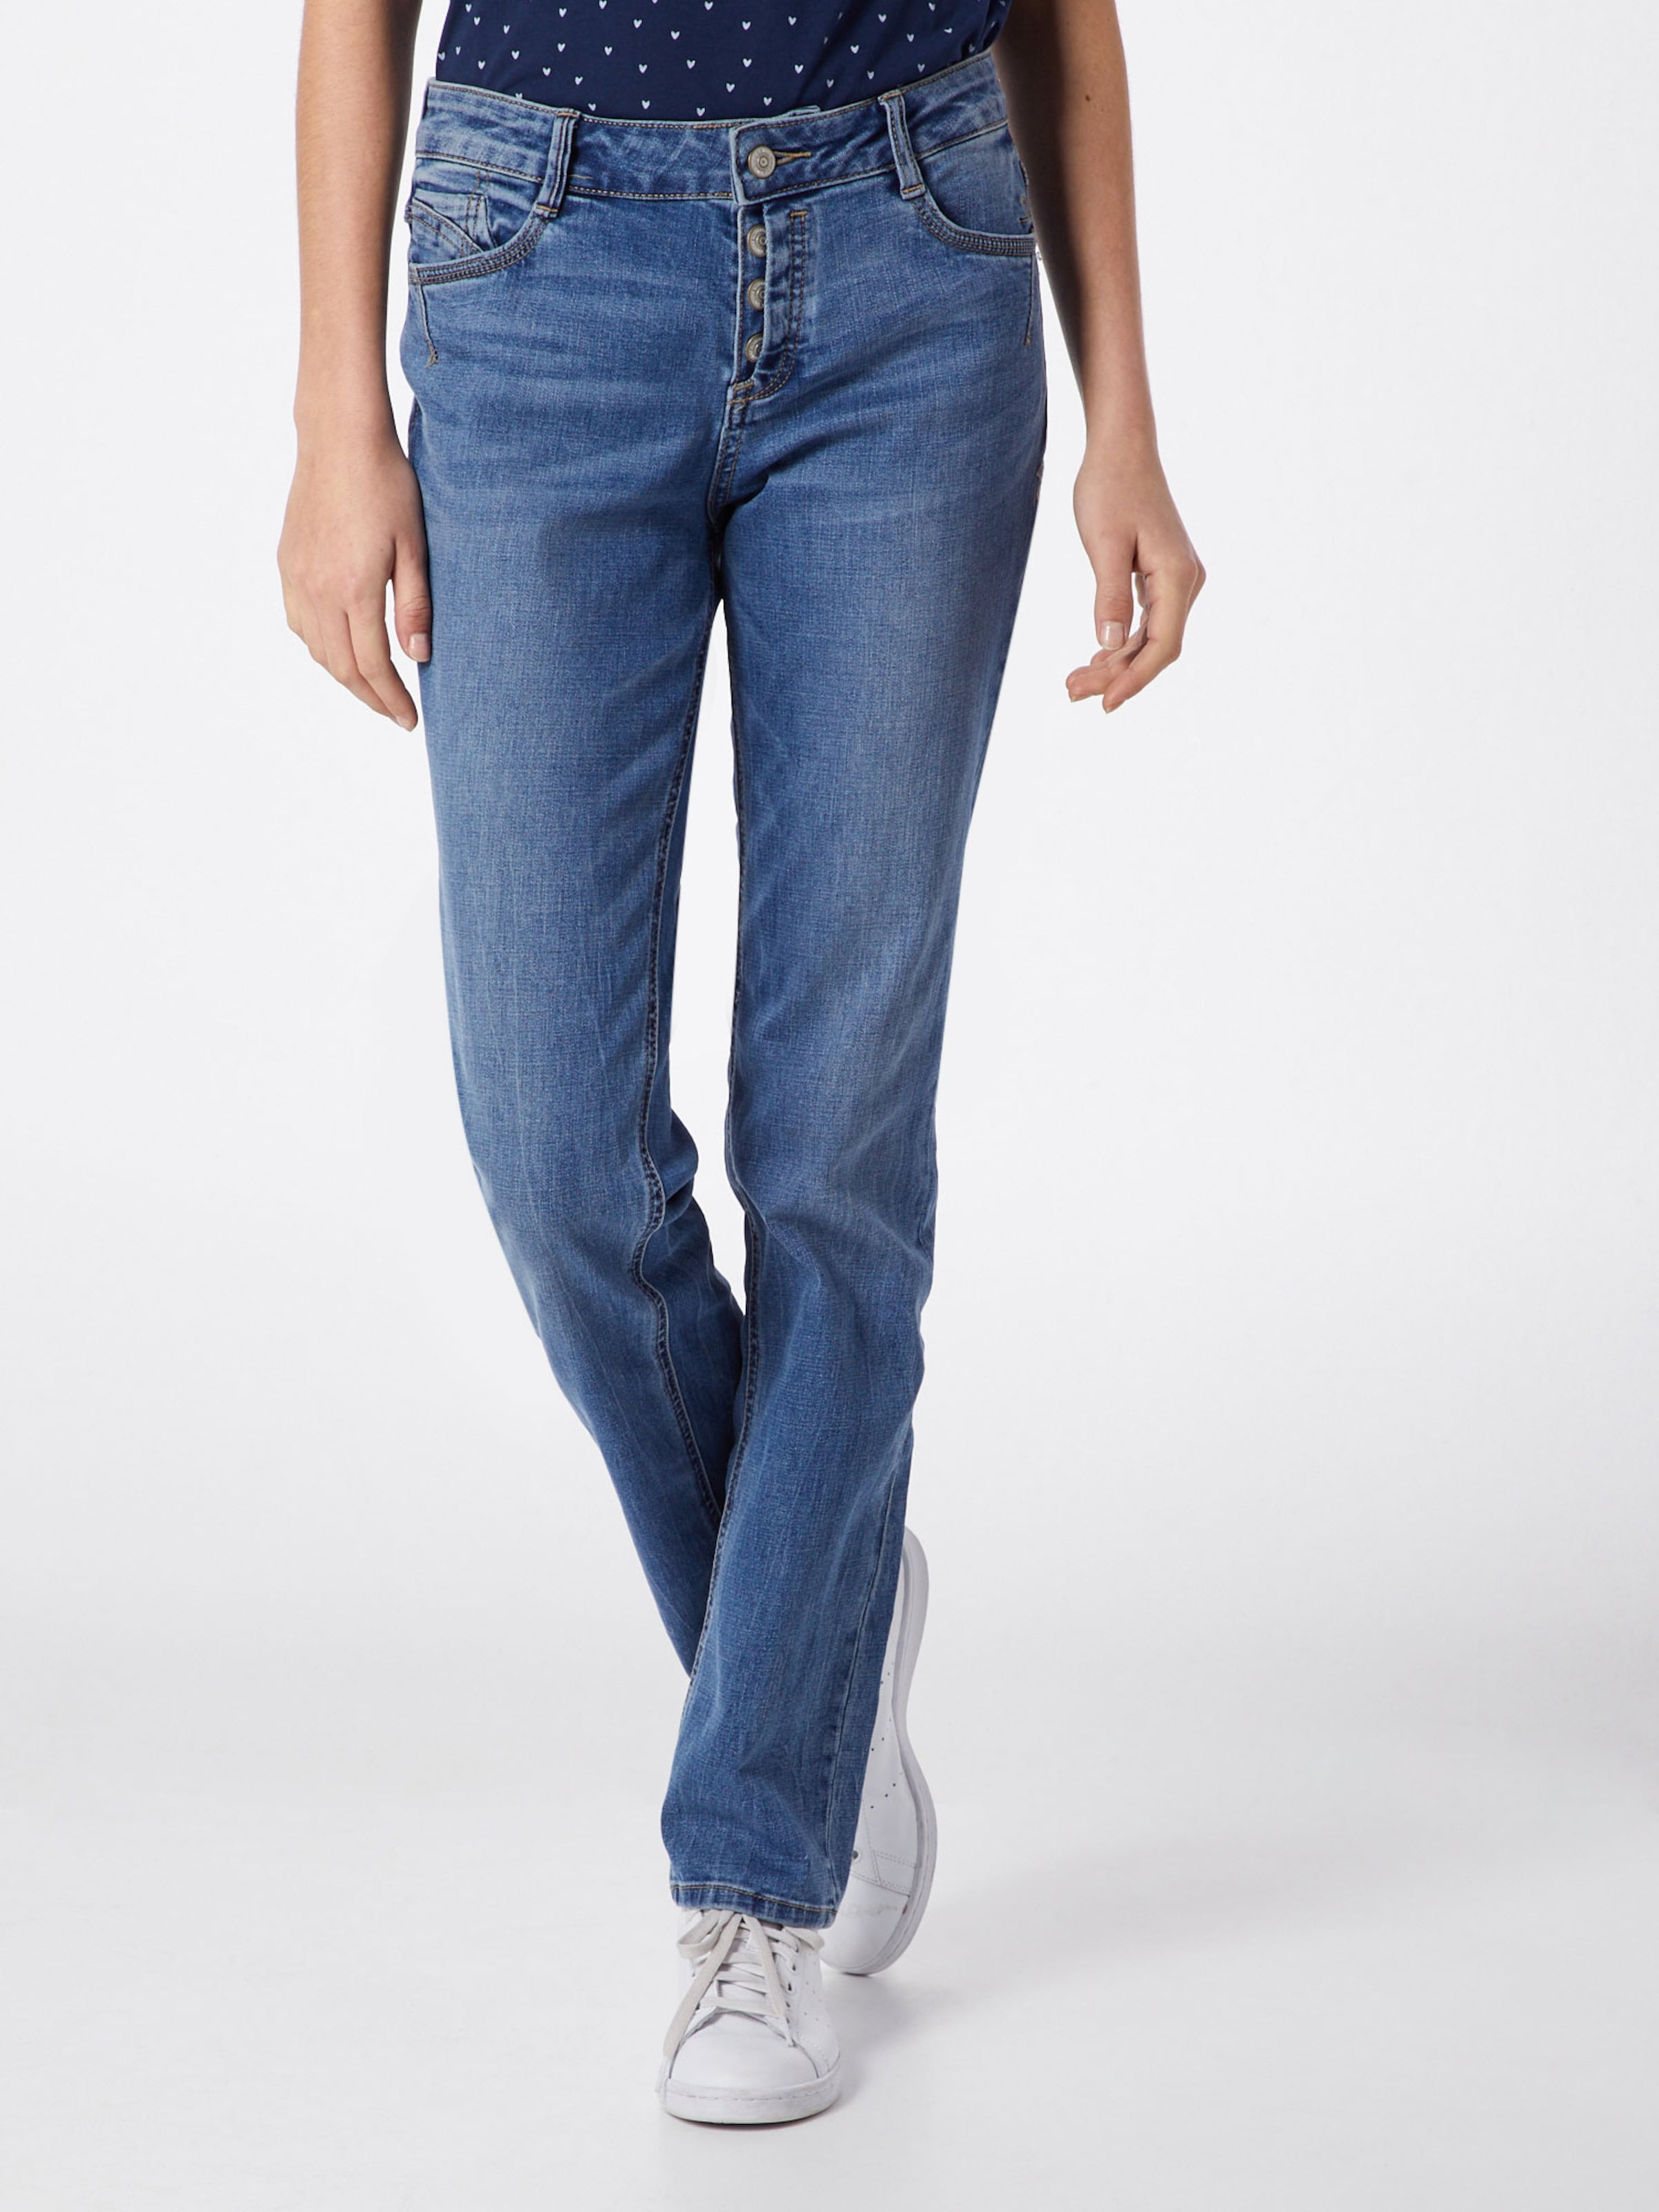 Jeans S 'smart Straight' In Blue Denim oliver hdxtsrCQ